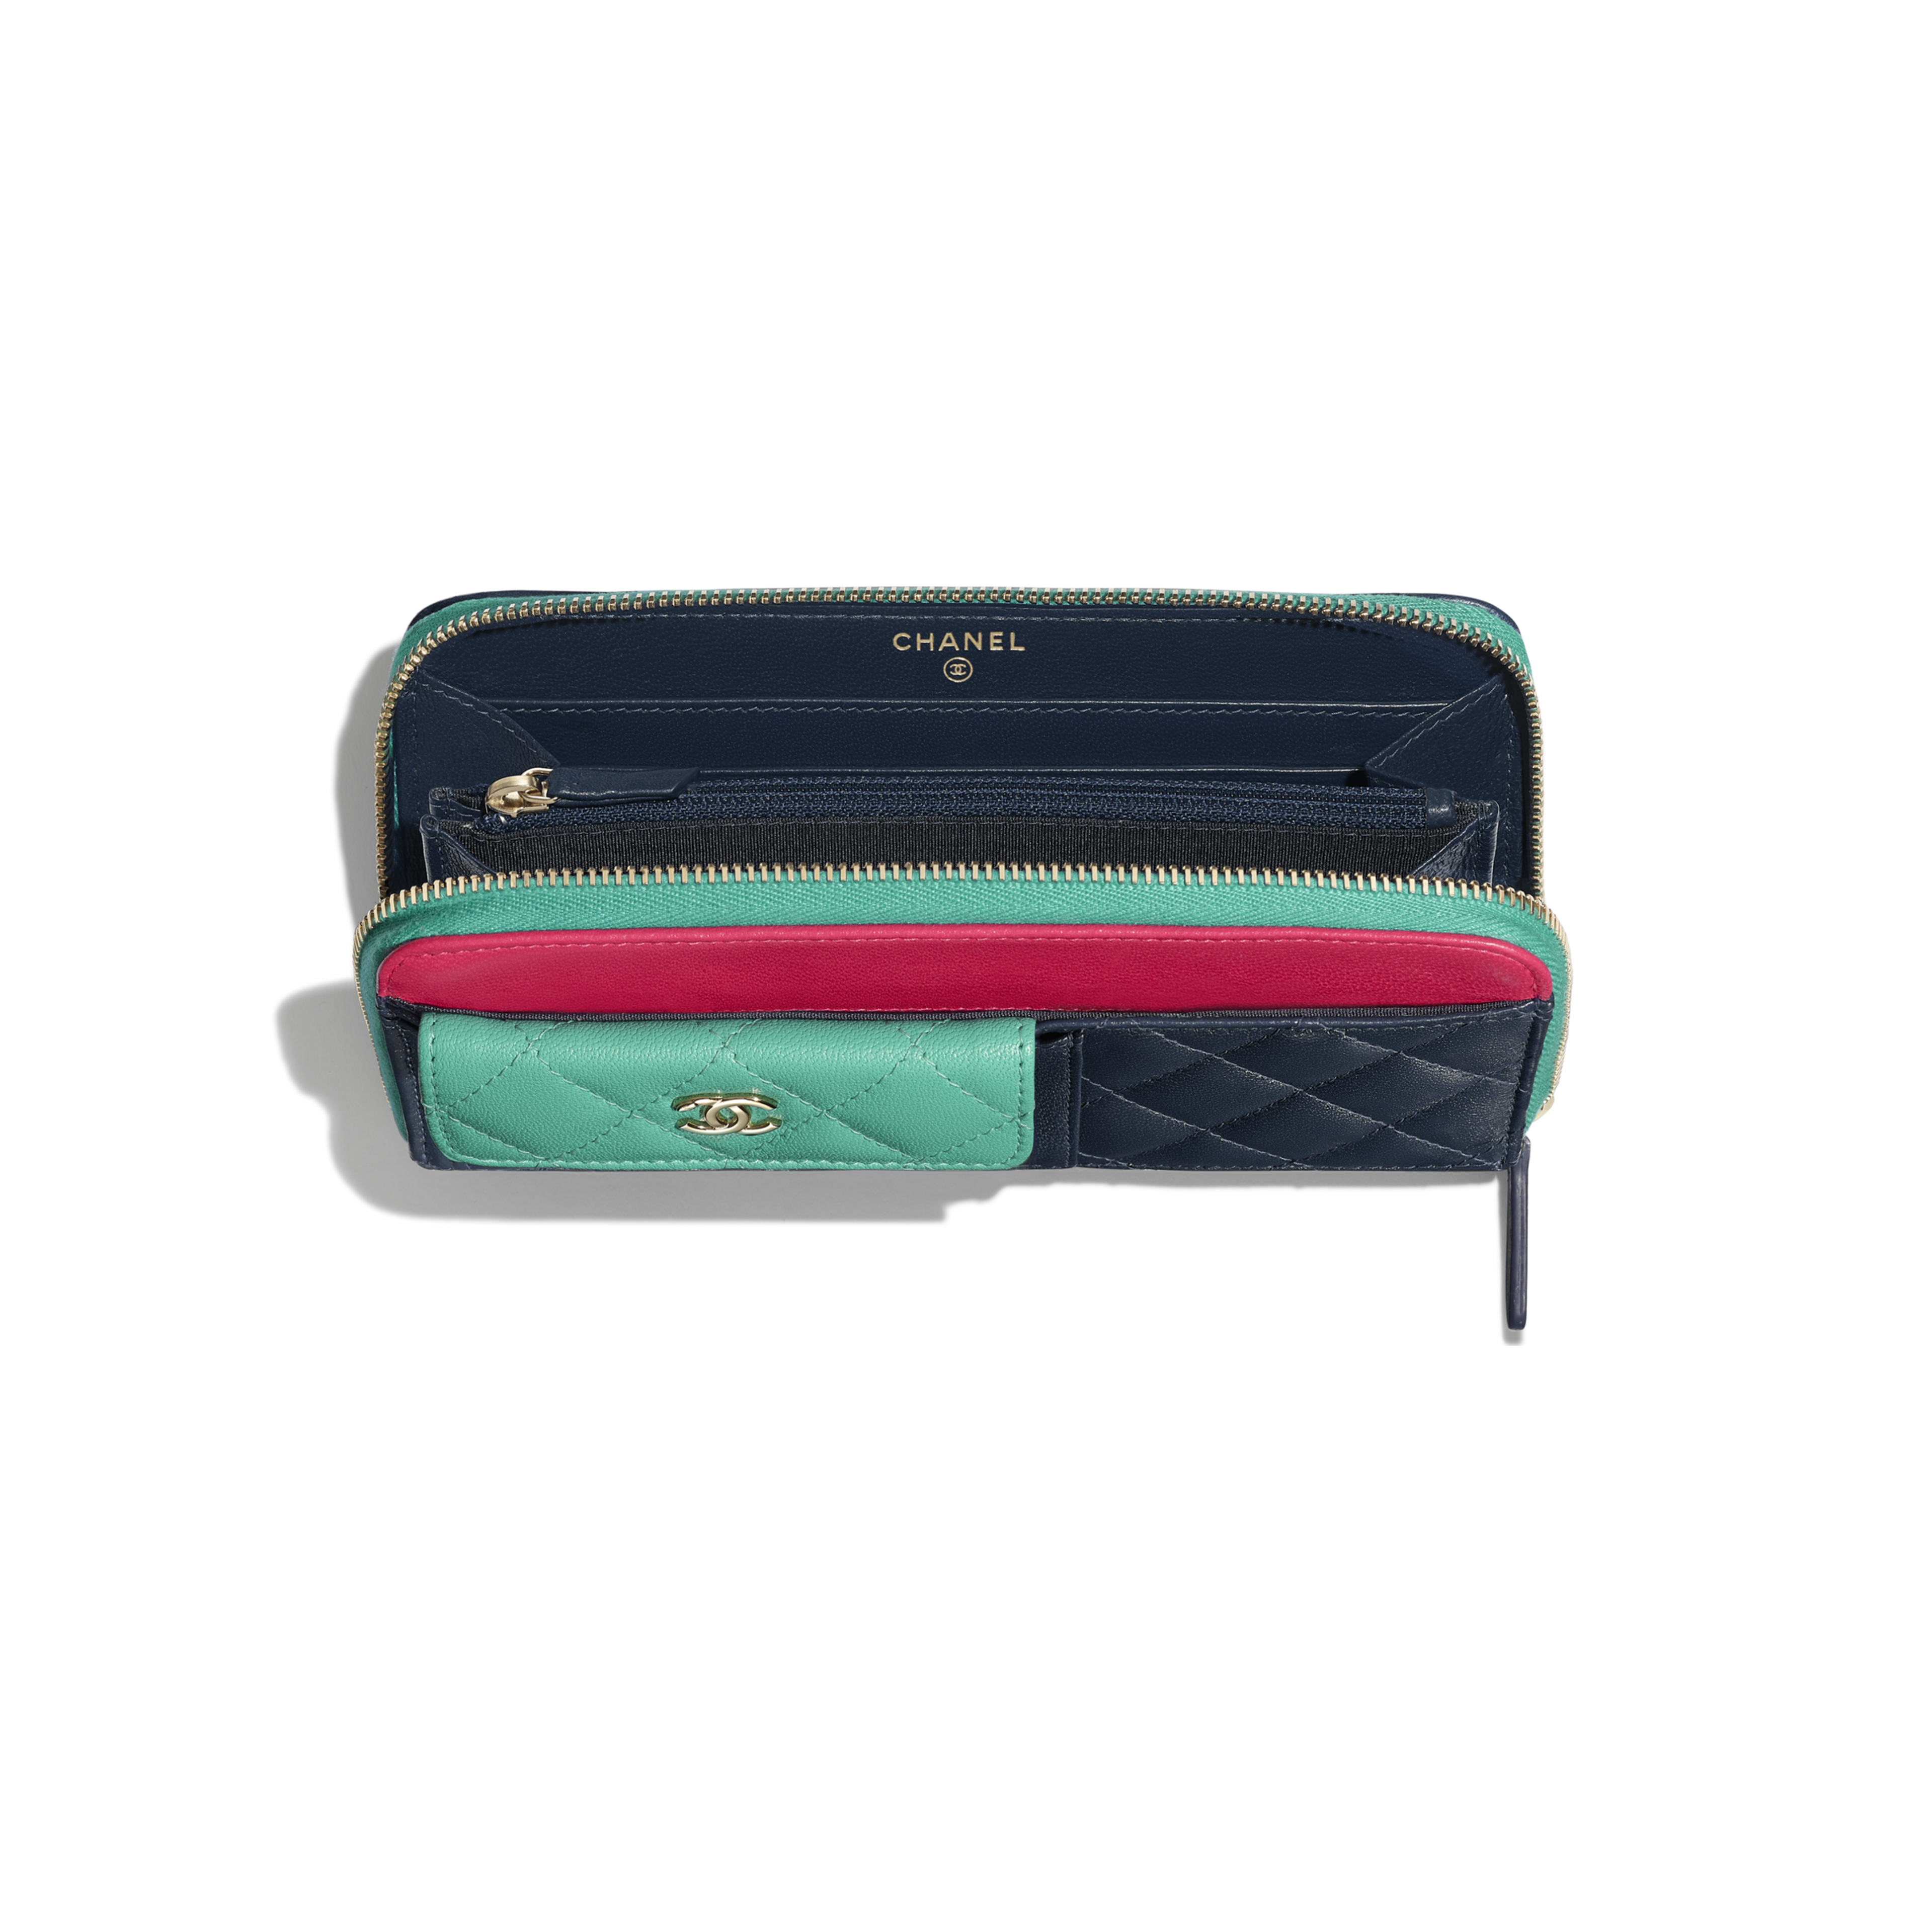 Long Zipped Wallet - Navy Blue, Green & Dark Pink - Goatskin & Gold-Tone Metal - Other view - see full sized version